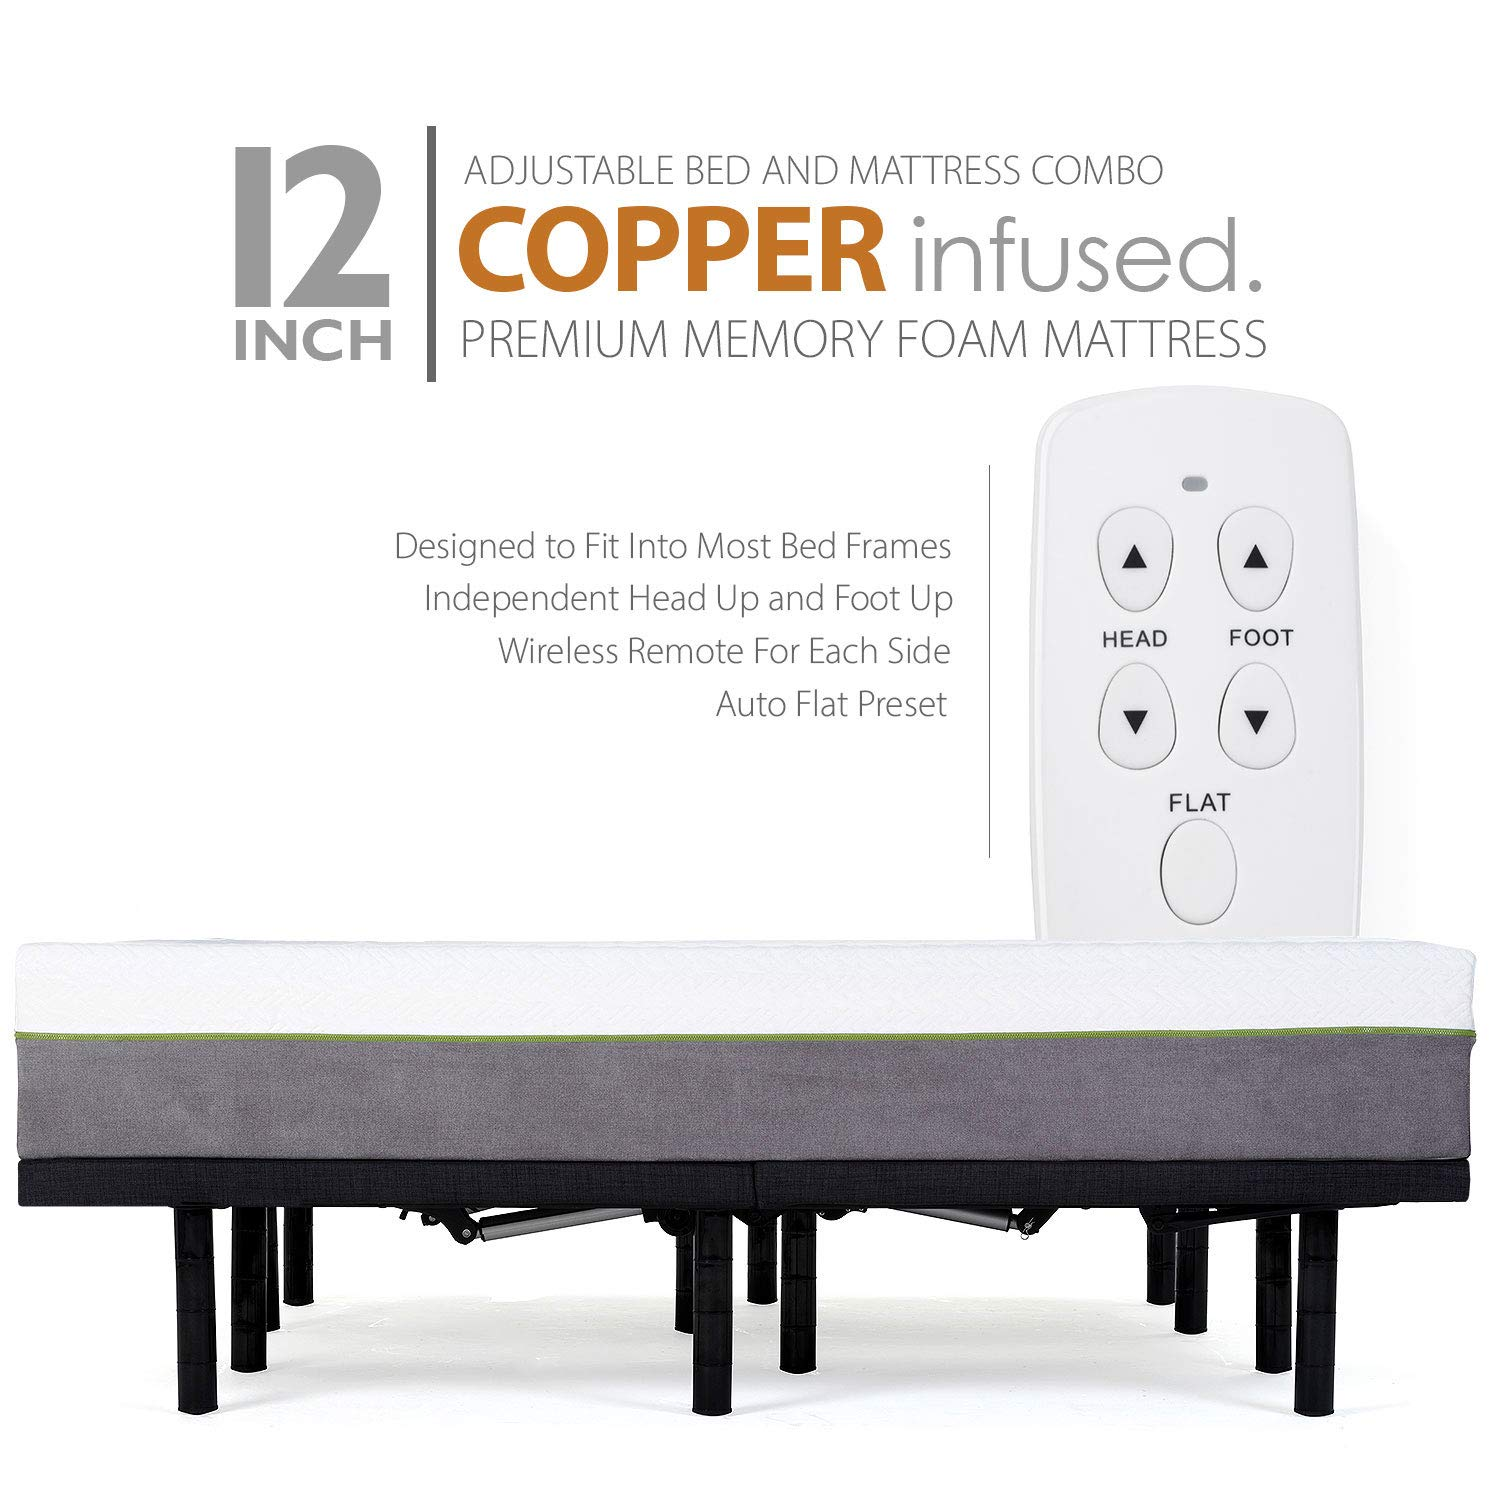 Adjustable Bed Frame and 12 Inch Copper Infused Cool Memory Foam Mattress Medium Firm Feel CertiPUR-US Certified Queen